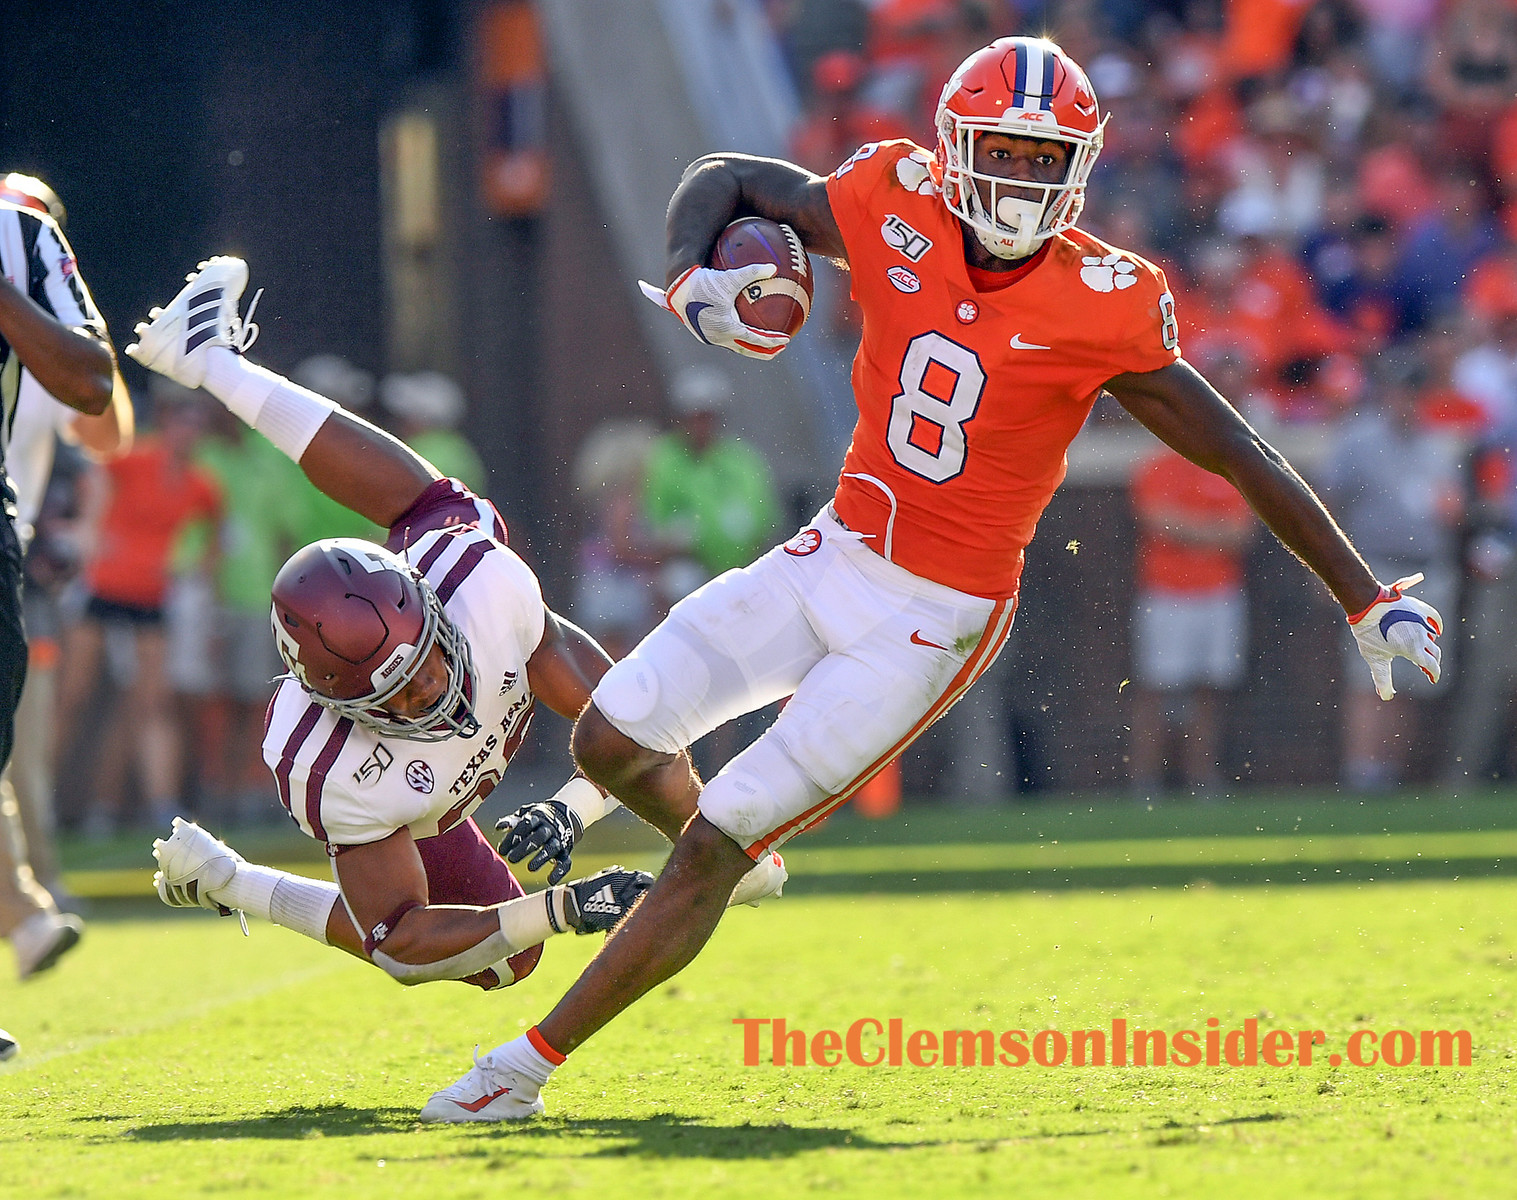 Clemson wide receiver Justyn Ross (8) carries against Texas A&M during the 3rd quarter Saturday, September 7, 2019 at Clemson's Memorial Stadium. Bart Boatwright/The Clemson Insider